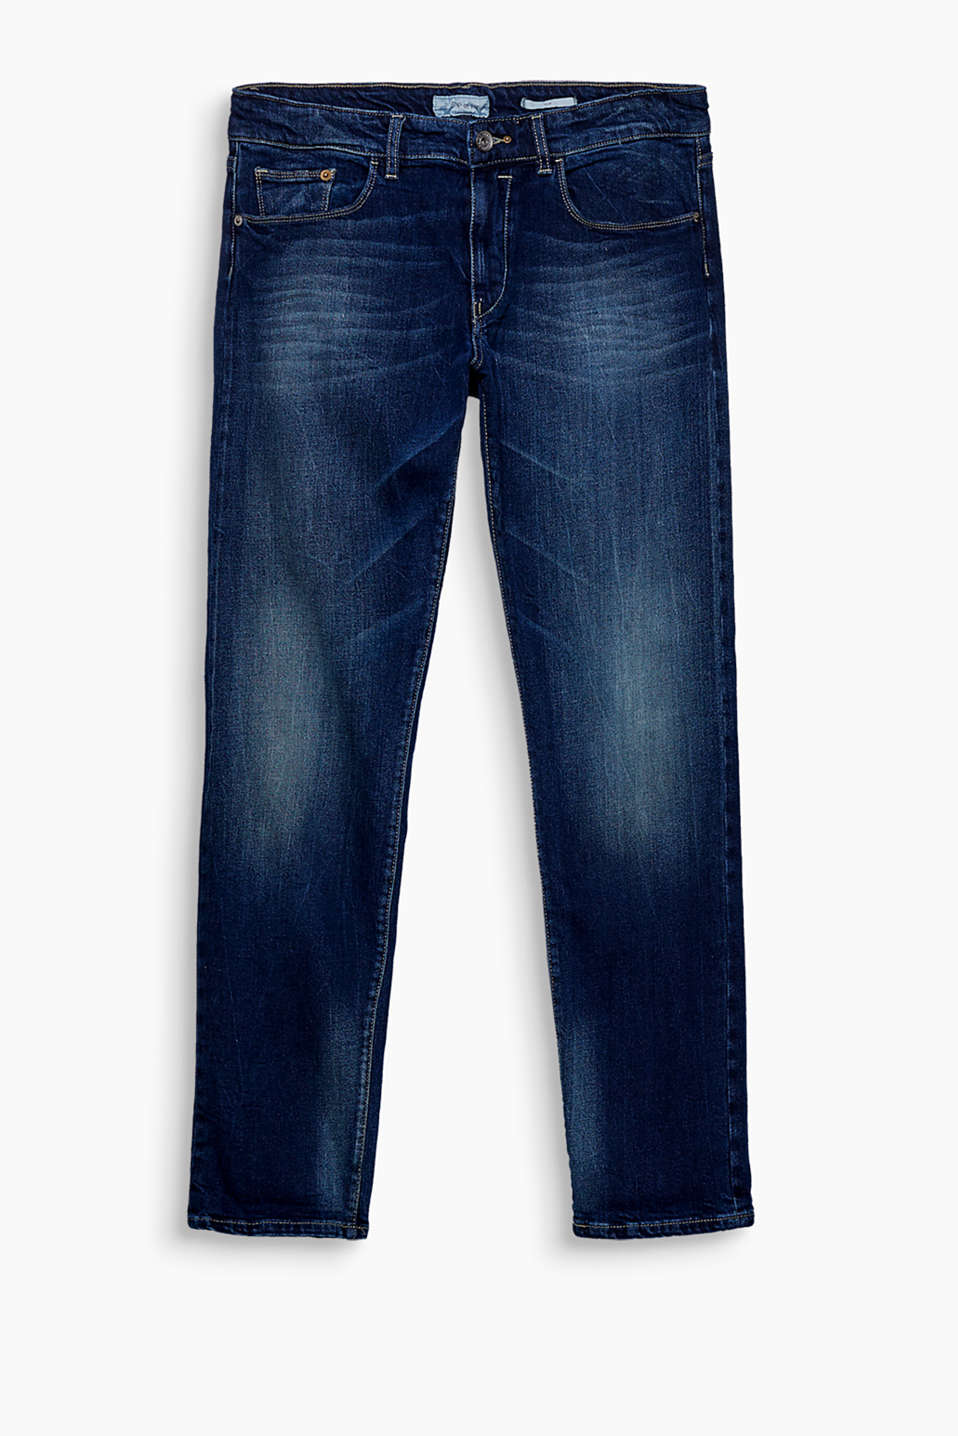 """The Wardrobe"": jeans with a dark garment wash and a woven selvedge edge, made of blended cotton with stretch"